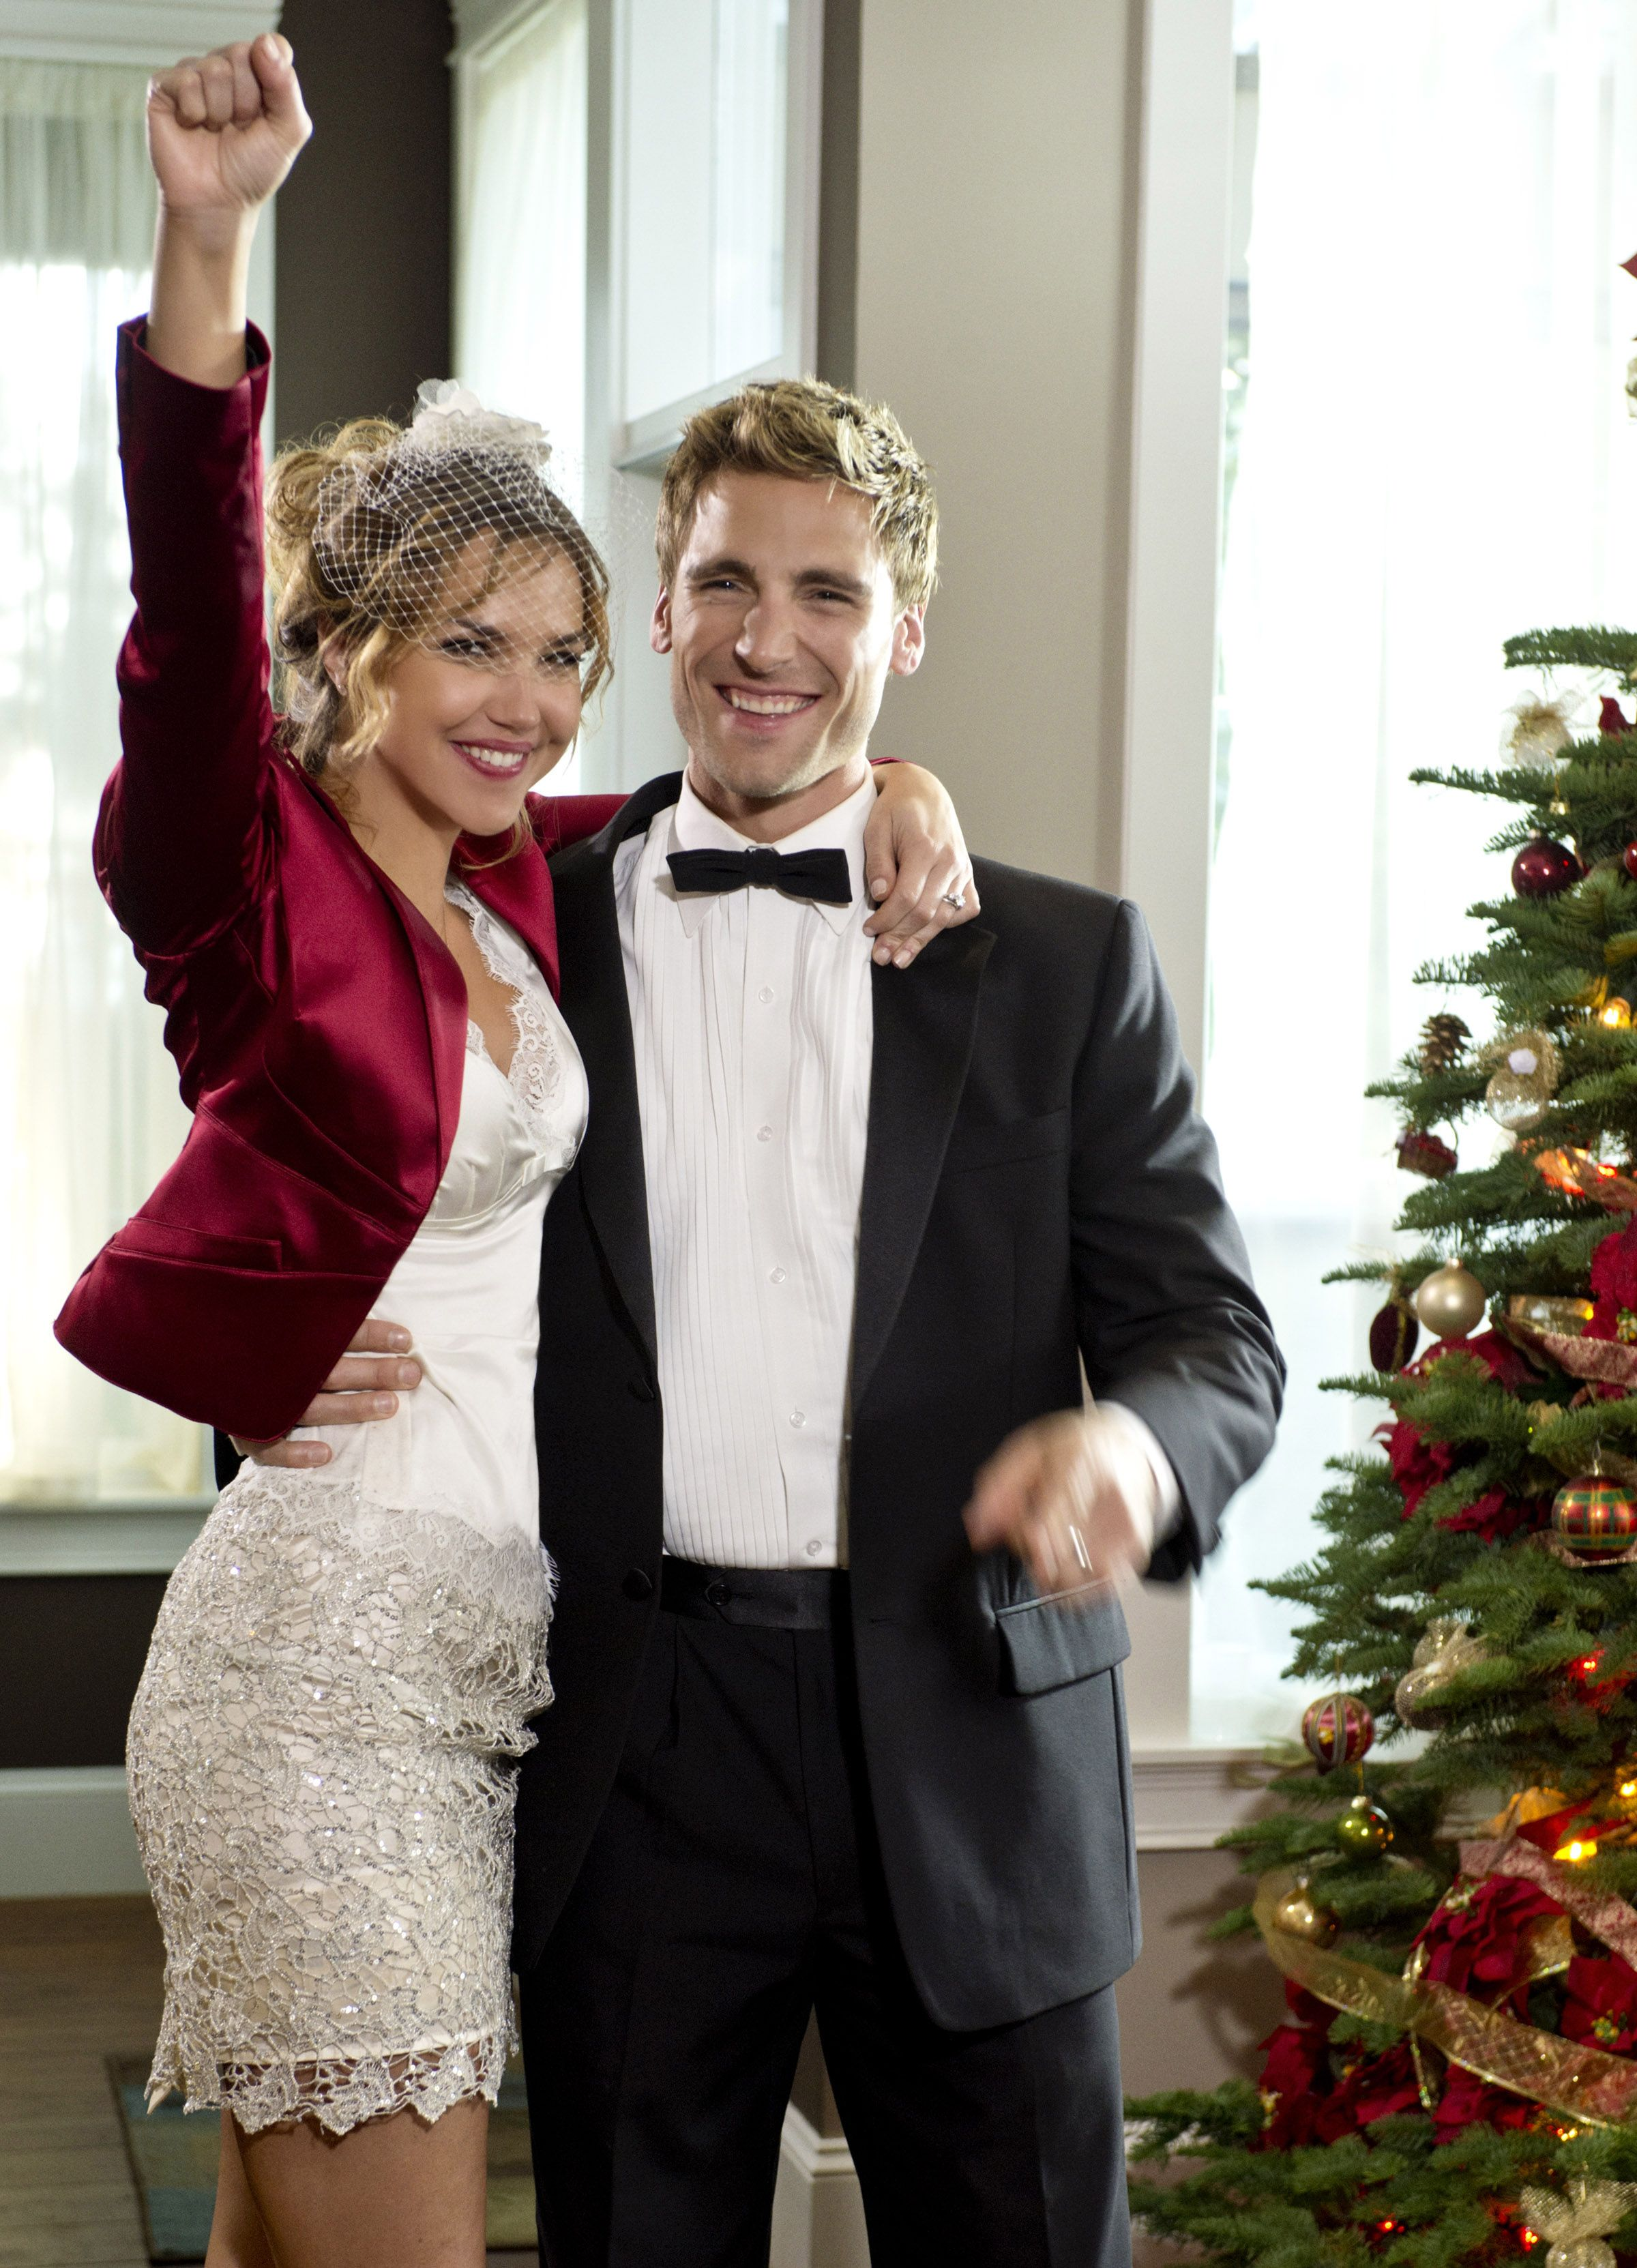 A Bride For Christmas.A Bride For Christmas Wedding Dresses In Cinema And In